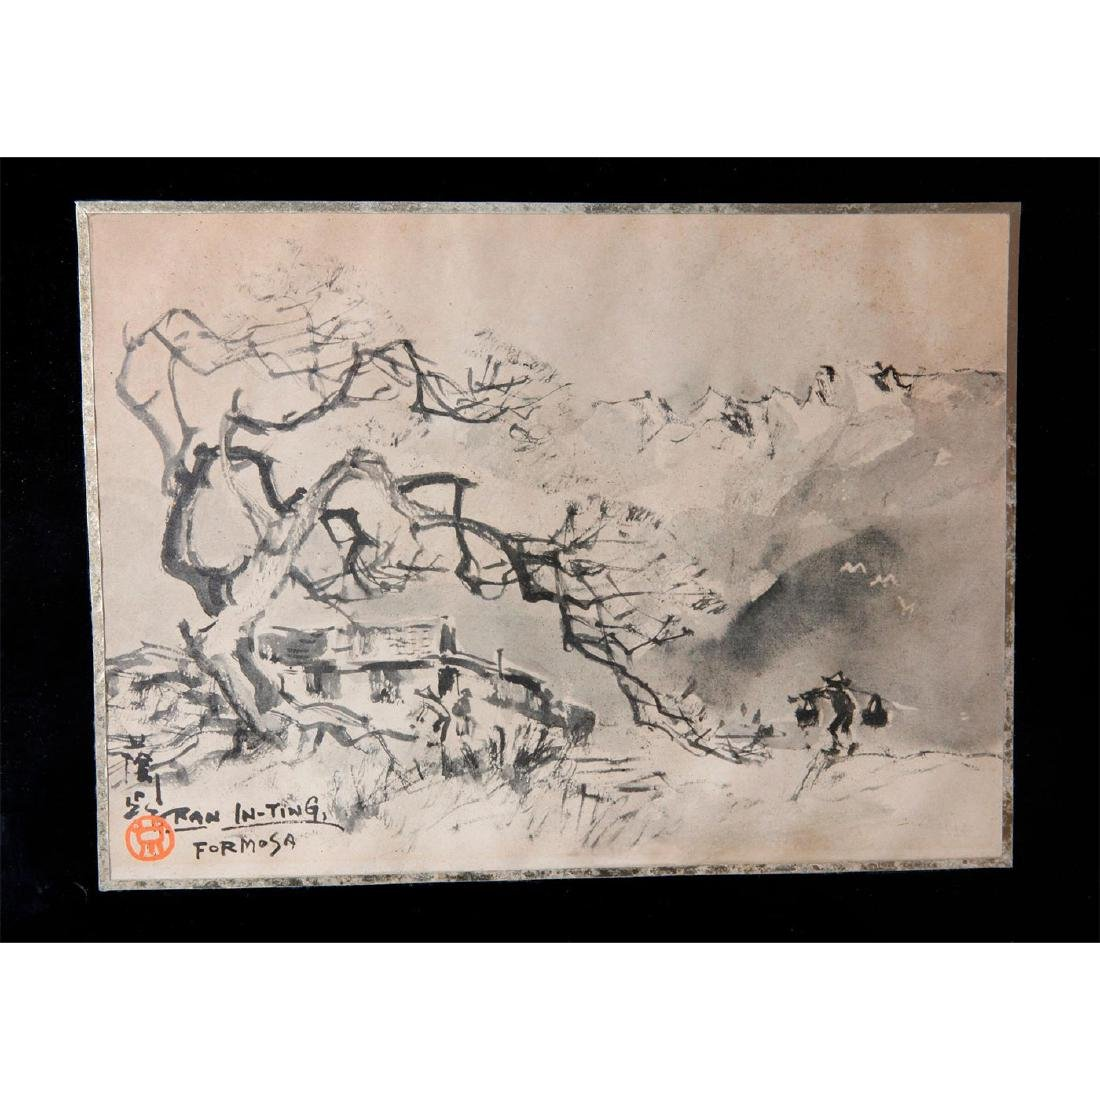 TAIWANESE INK WASH WATERCOLOR -FORMOSA, BY RAN IN-TING, - 2